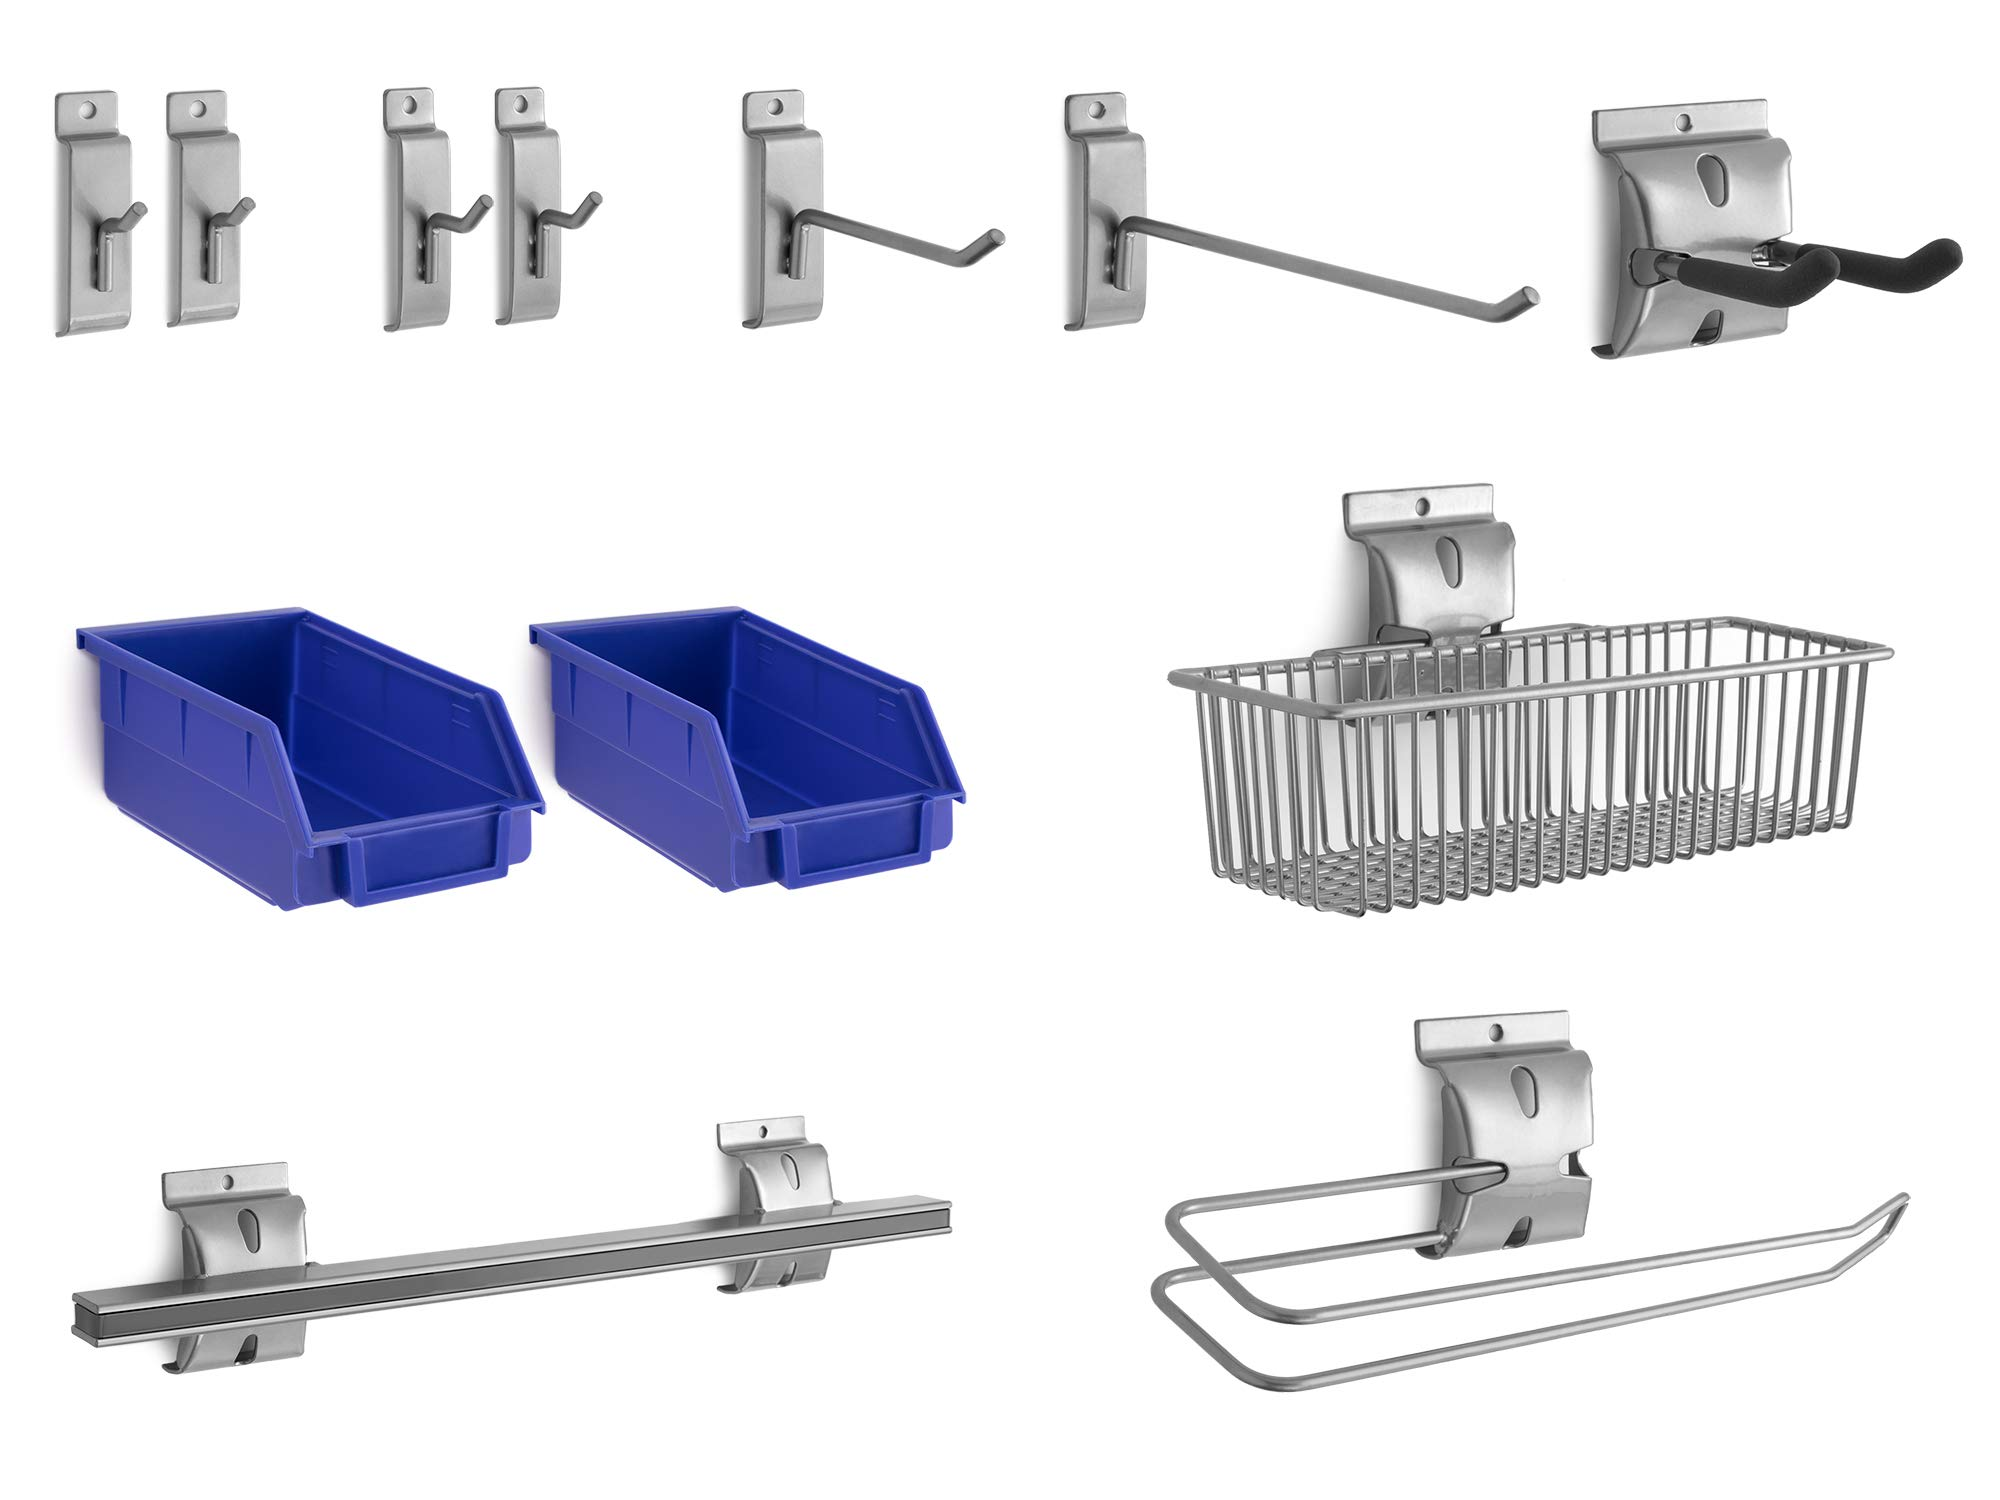 NewAge Products 12-Piece Steel Slatwall Accessory Kit, Garage Wall Organizers, 51720 by NewAge Products Inc.